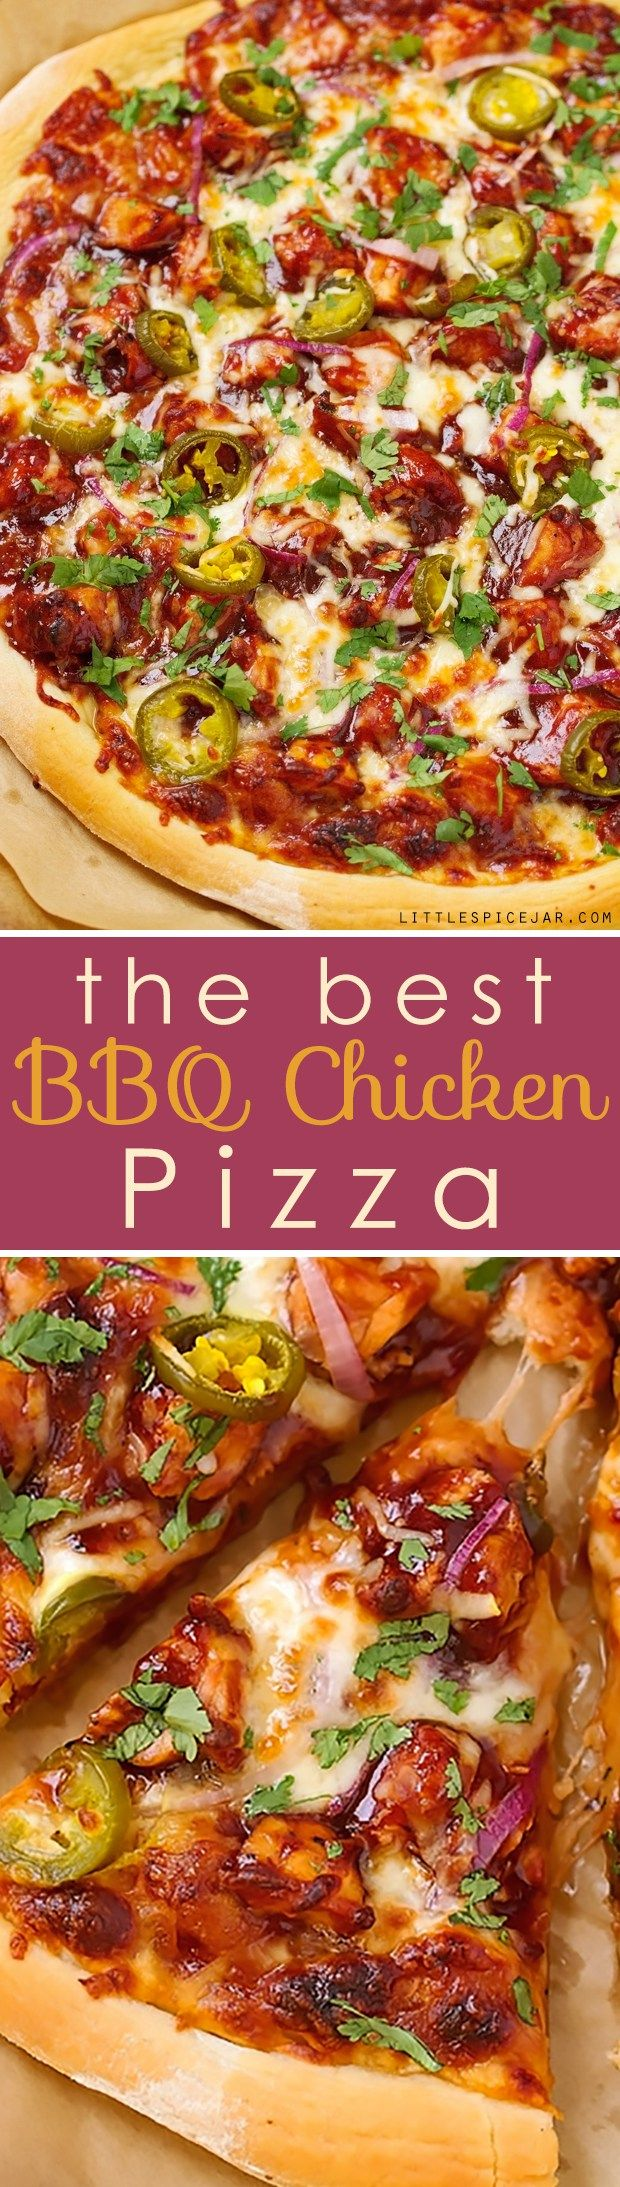 BBQ Chicken Pizza - made with grilled chicken, sliced jalapenos and red onions, and cilantro, So good you'll never go to CPK again!#bbqchickenpizza #chickenpizza #bbqpizza   Littlespicejar.com @littlespicejar